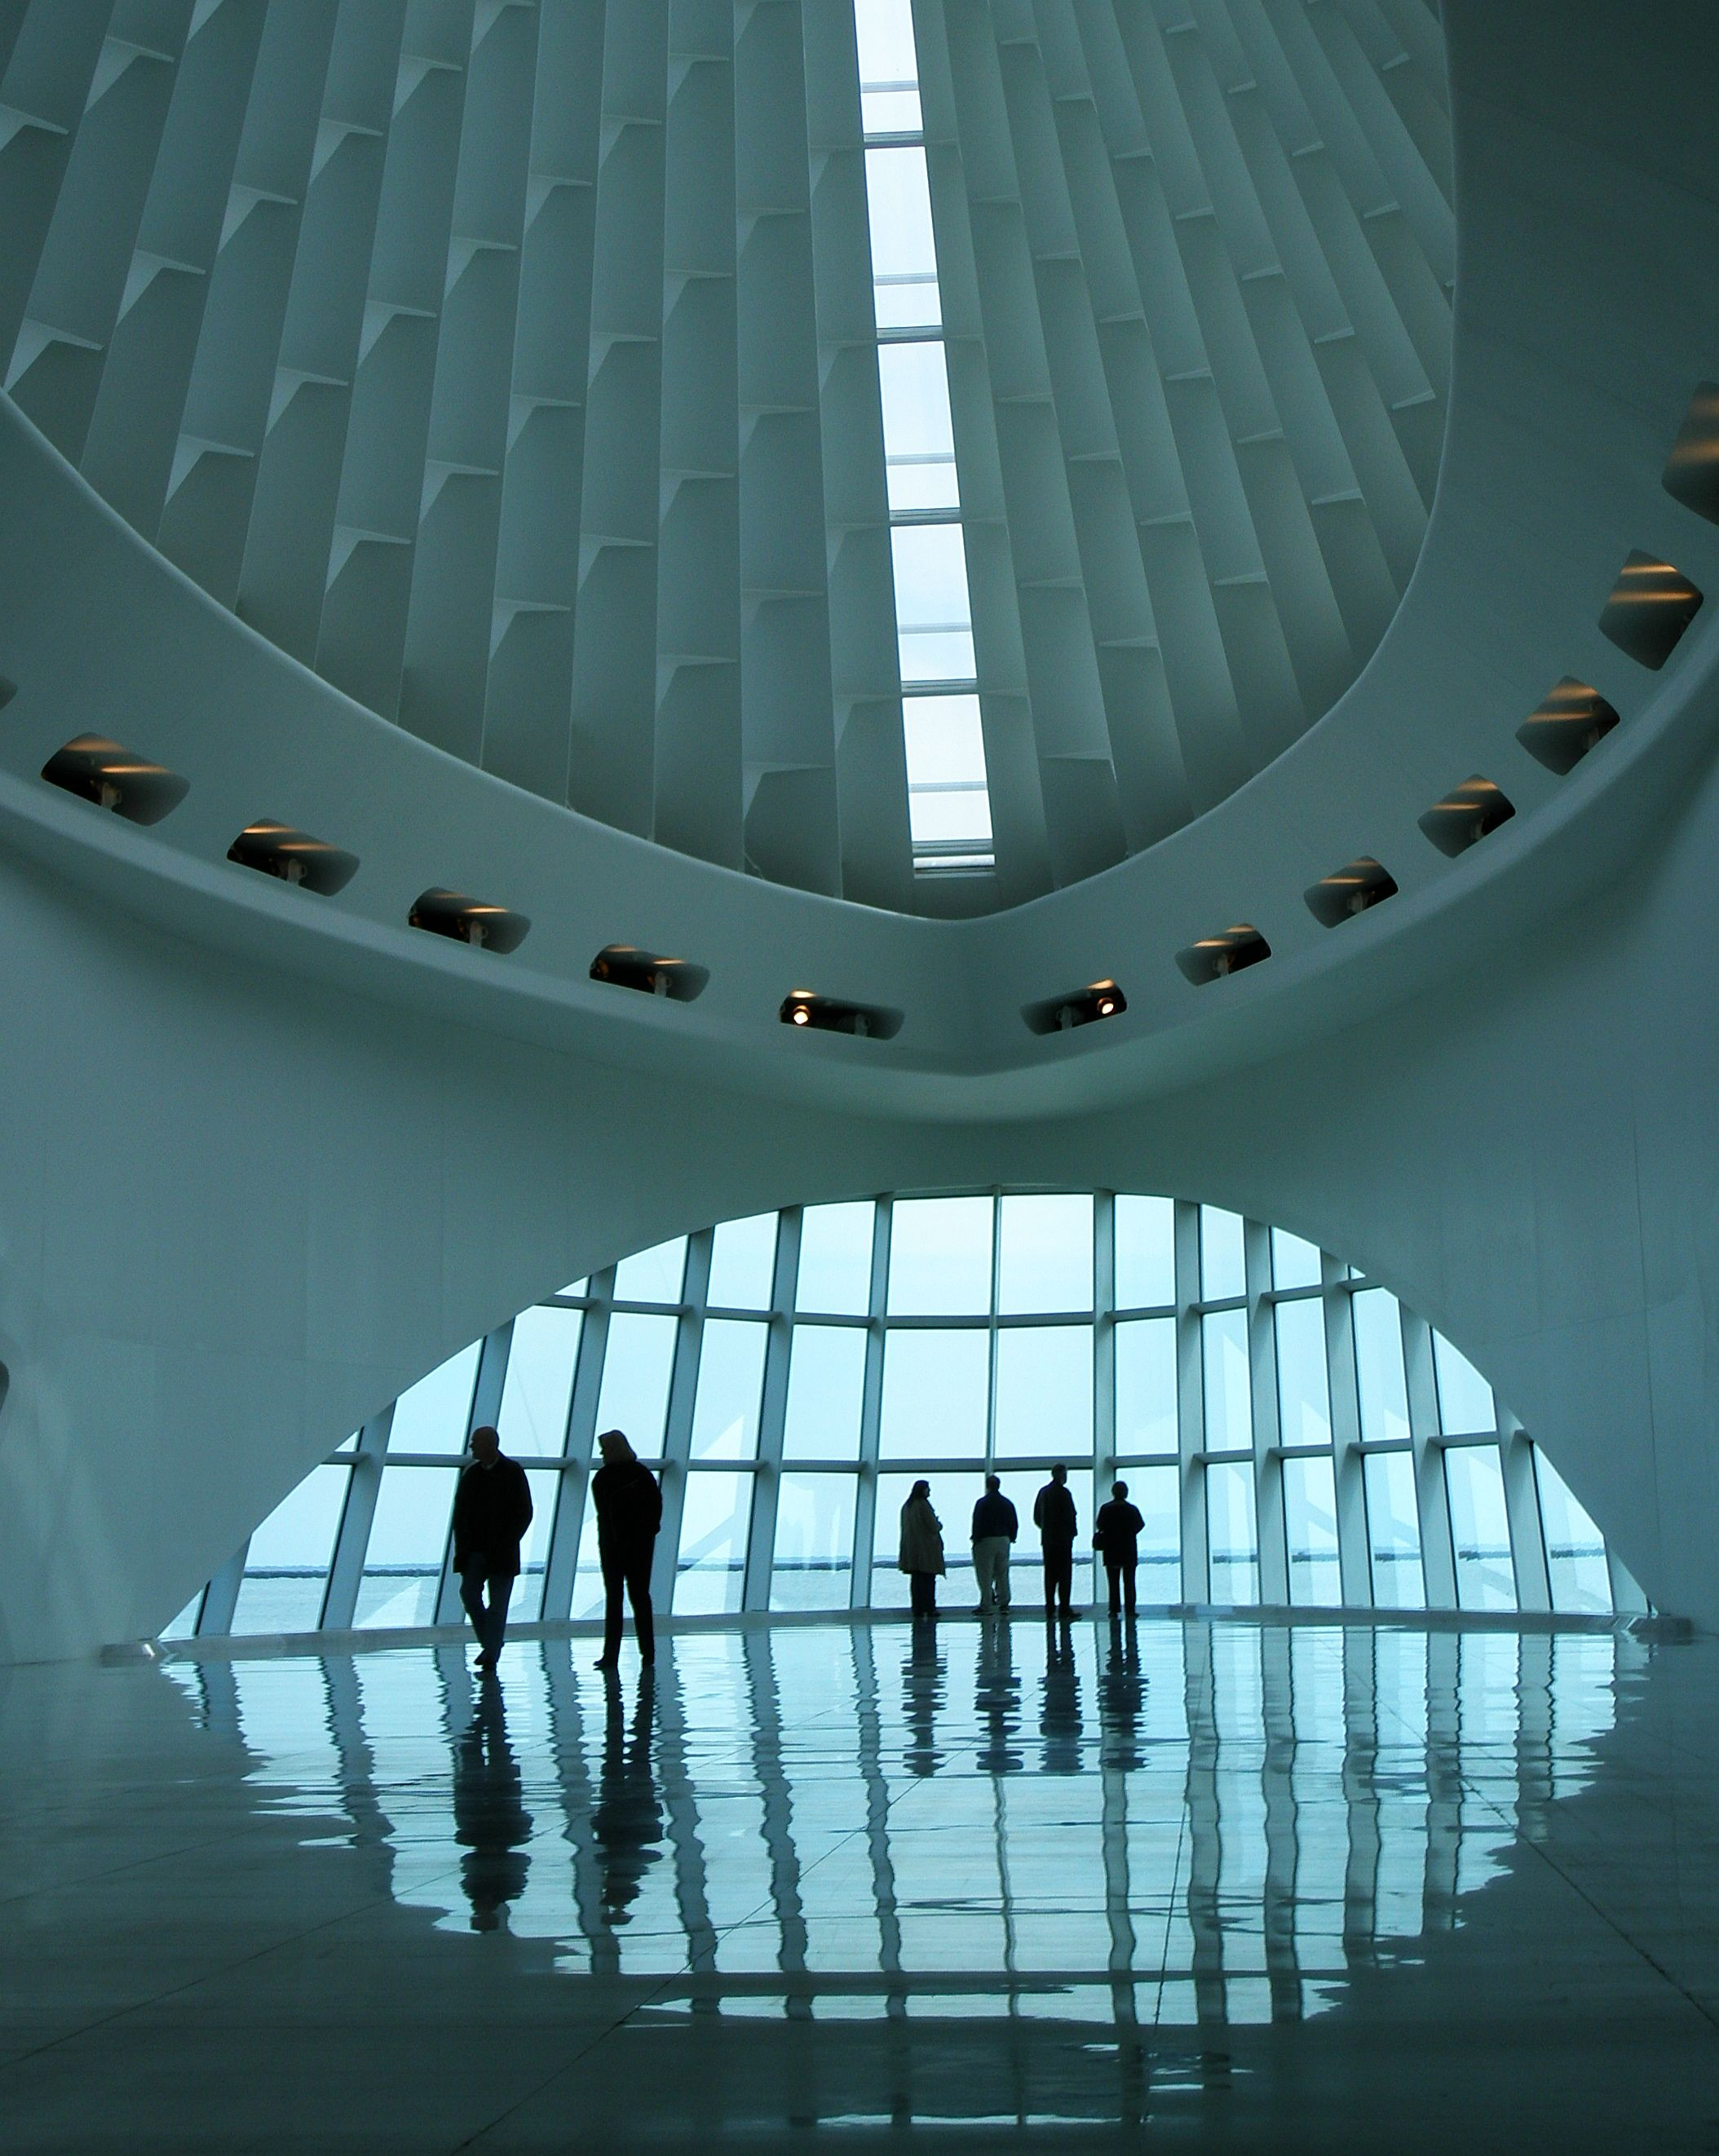 People at the Milwaukee Art Museum — photo by Tanakawho